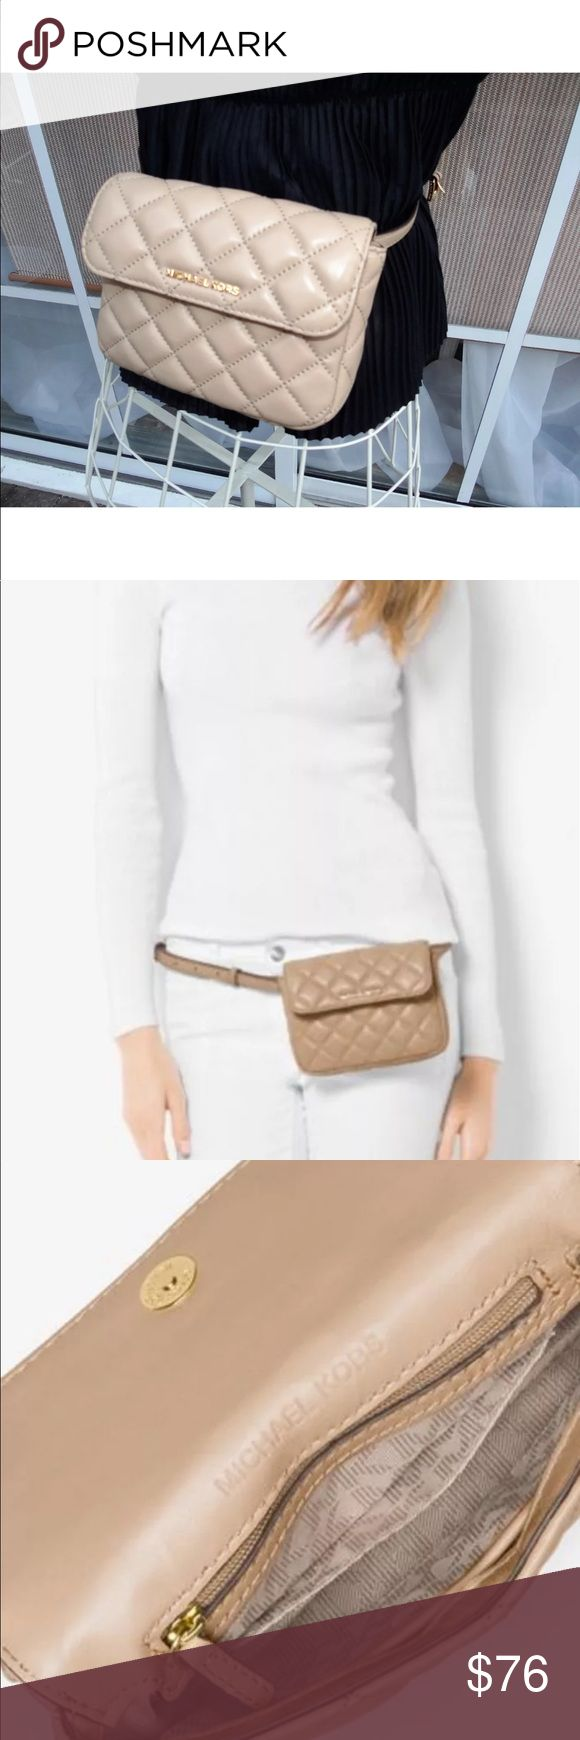 """Sloan Small Quilted Belt Bag Fanny Pack in Bisque Michael Kors Sloan SMALL Belt Bag quilted Leather Bisque/Gold Msrp 158.00 ( beige/tan family)  100% authentic Guaranteed - Not a good fit for the plus sized smartphones  Small sized bag; 7""""W x 5""""H x 1""""D Interior features signature lining, 1 zip pocket and 1 slip pocket 31-1/2""""L to 41""""L adjustable belt strap Snap closure Exterior features shiny gold-tone hardware, logo and quilting Quilted Leather - Dustbag included Michael Kors Bags Mini Bags"""